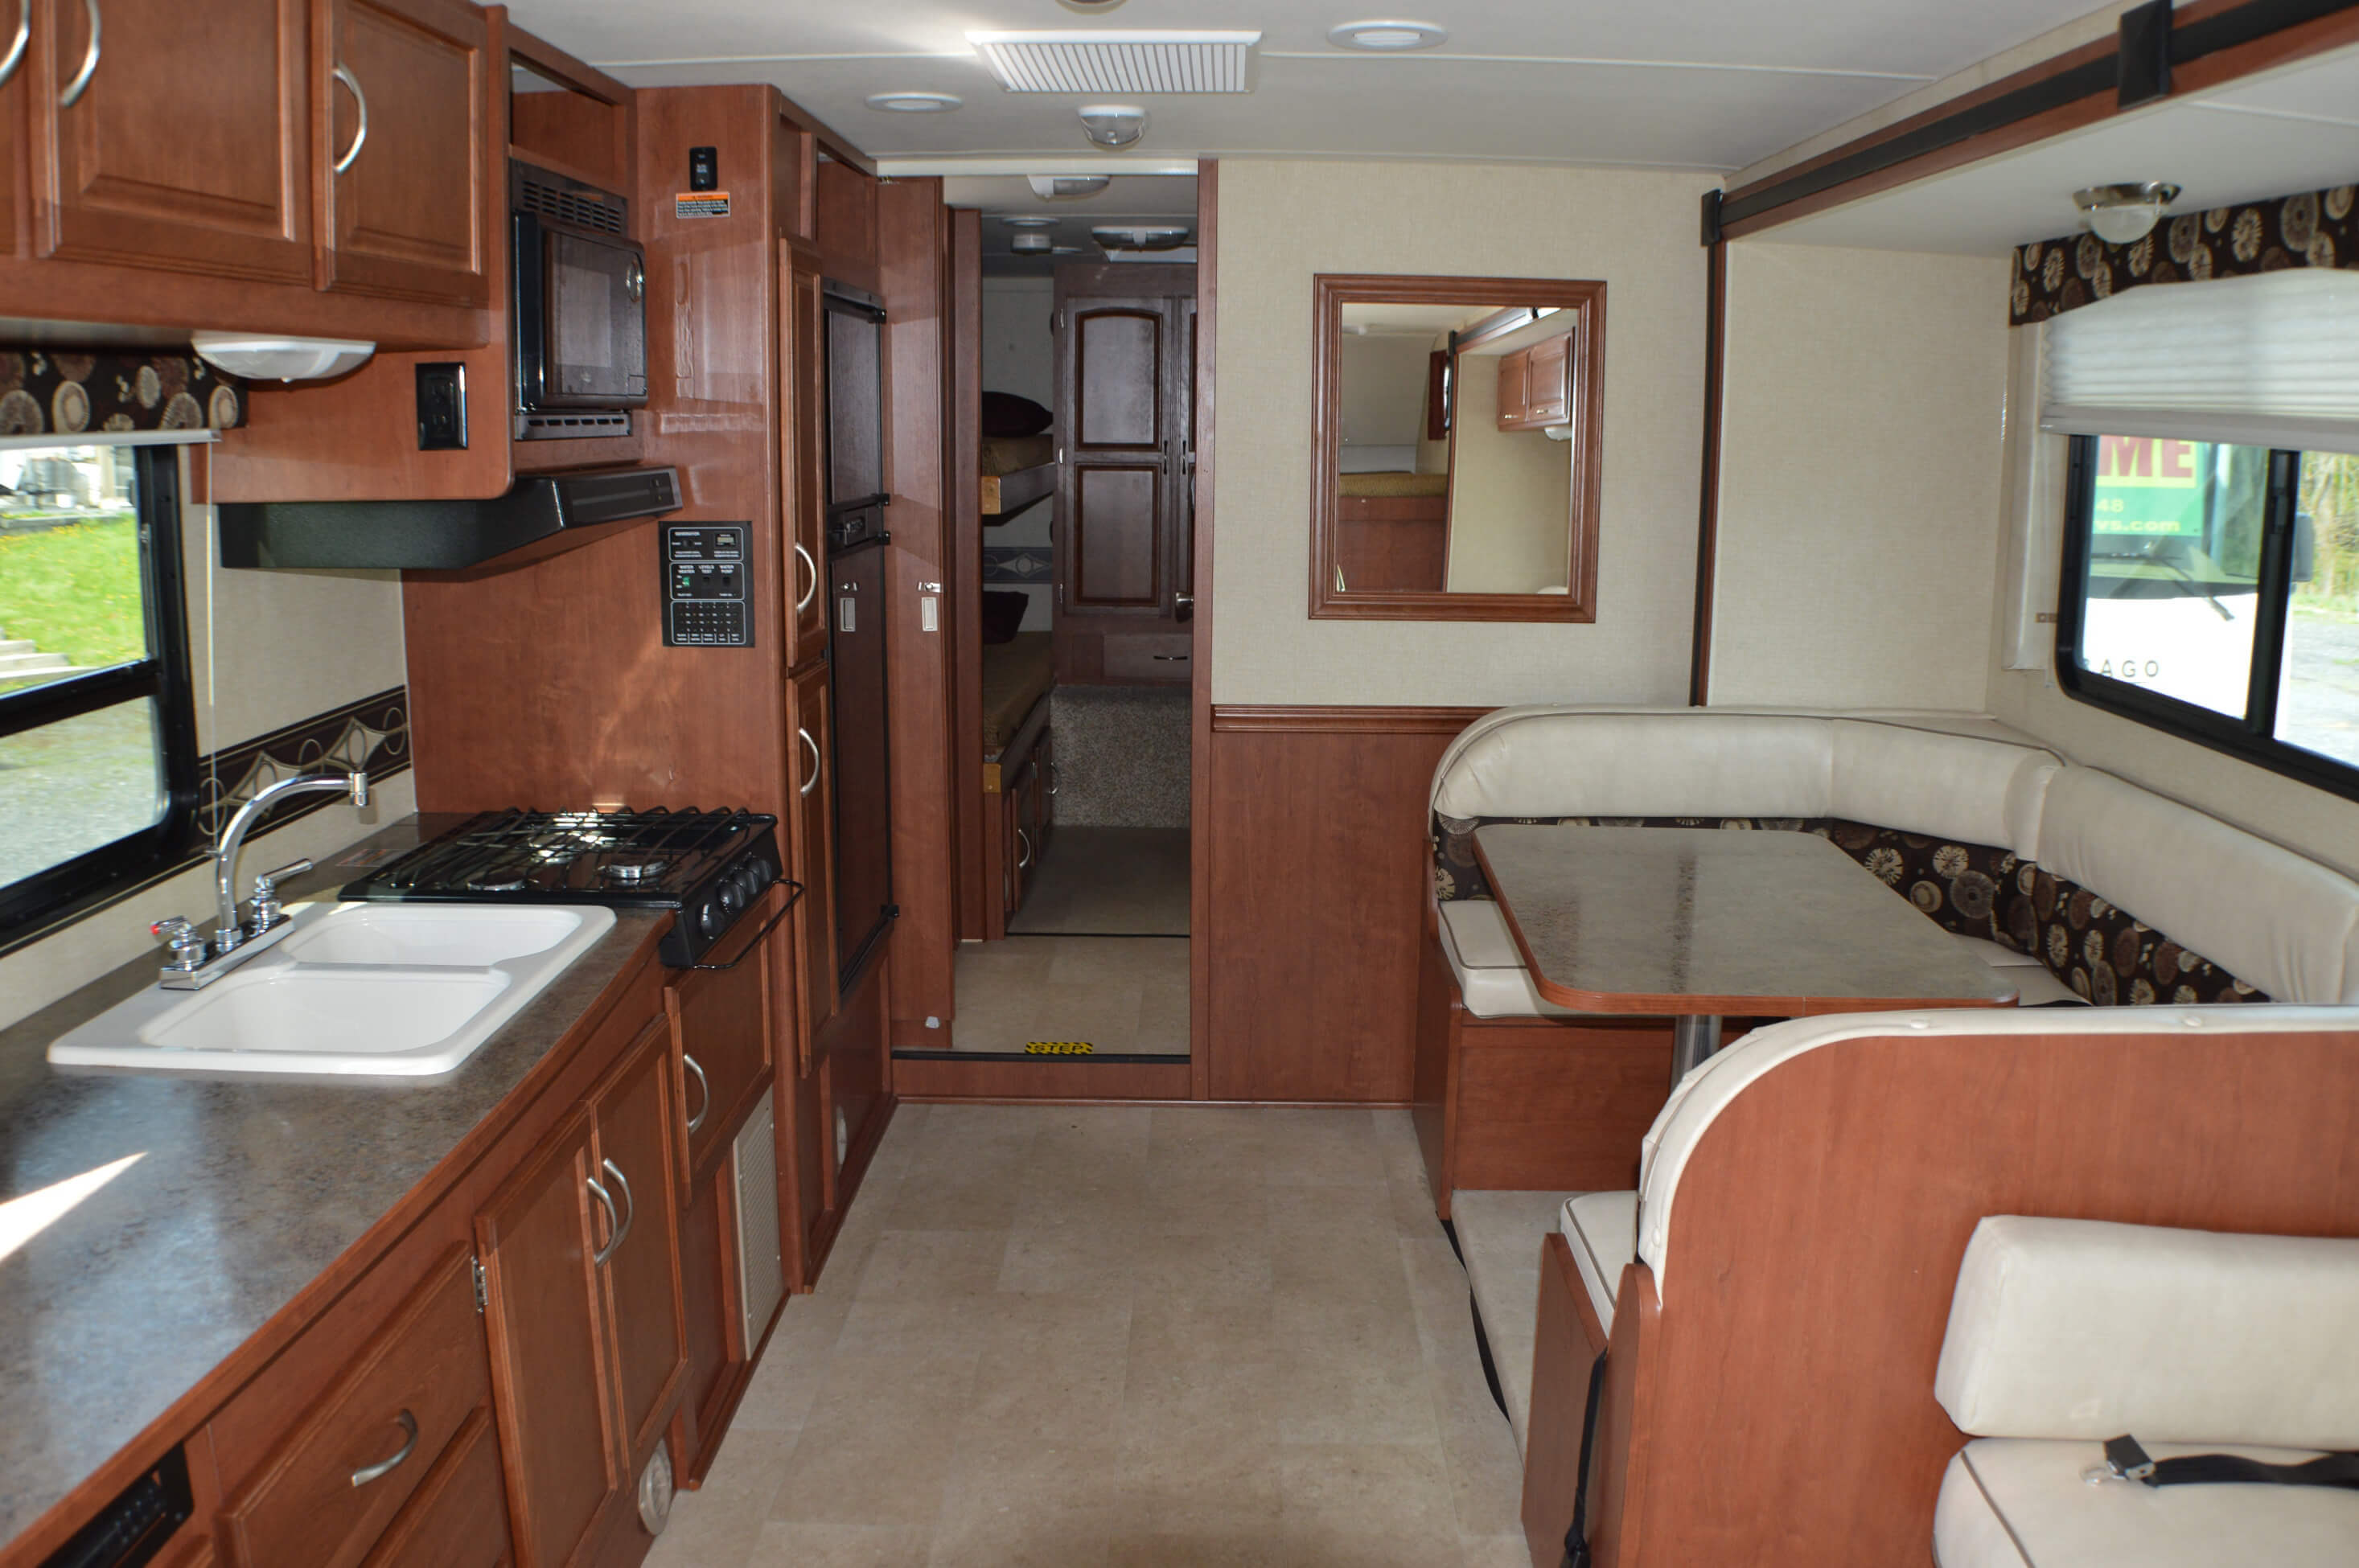 Beckley's Camping Center RV Rentals - Review and reserve right here